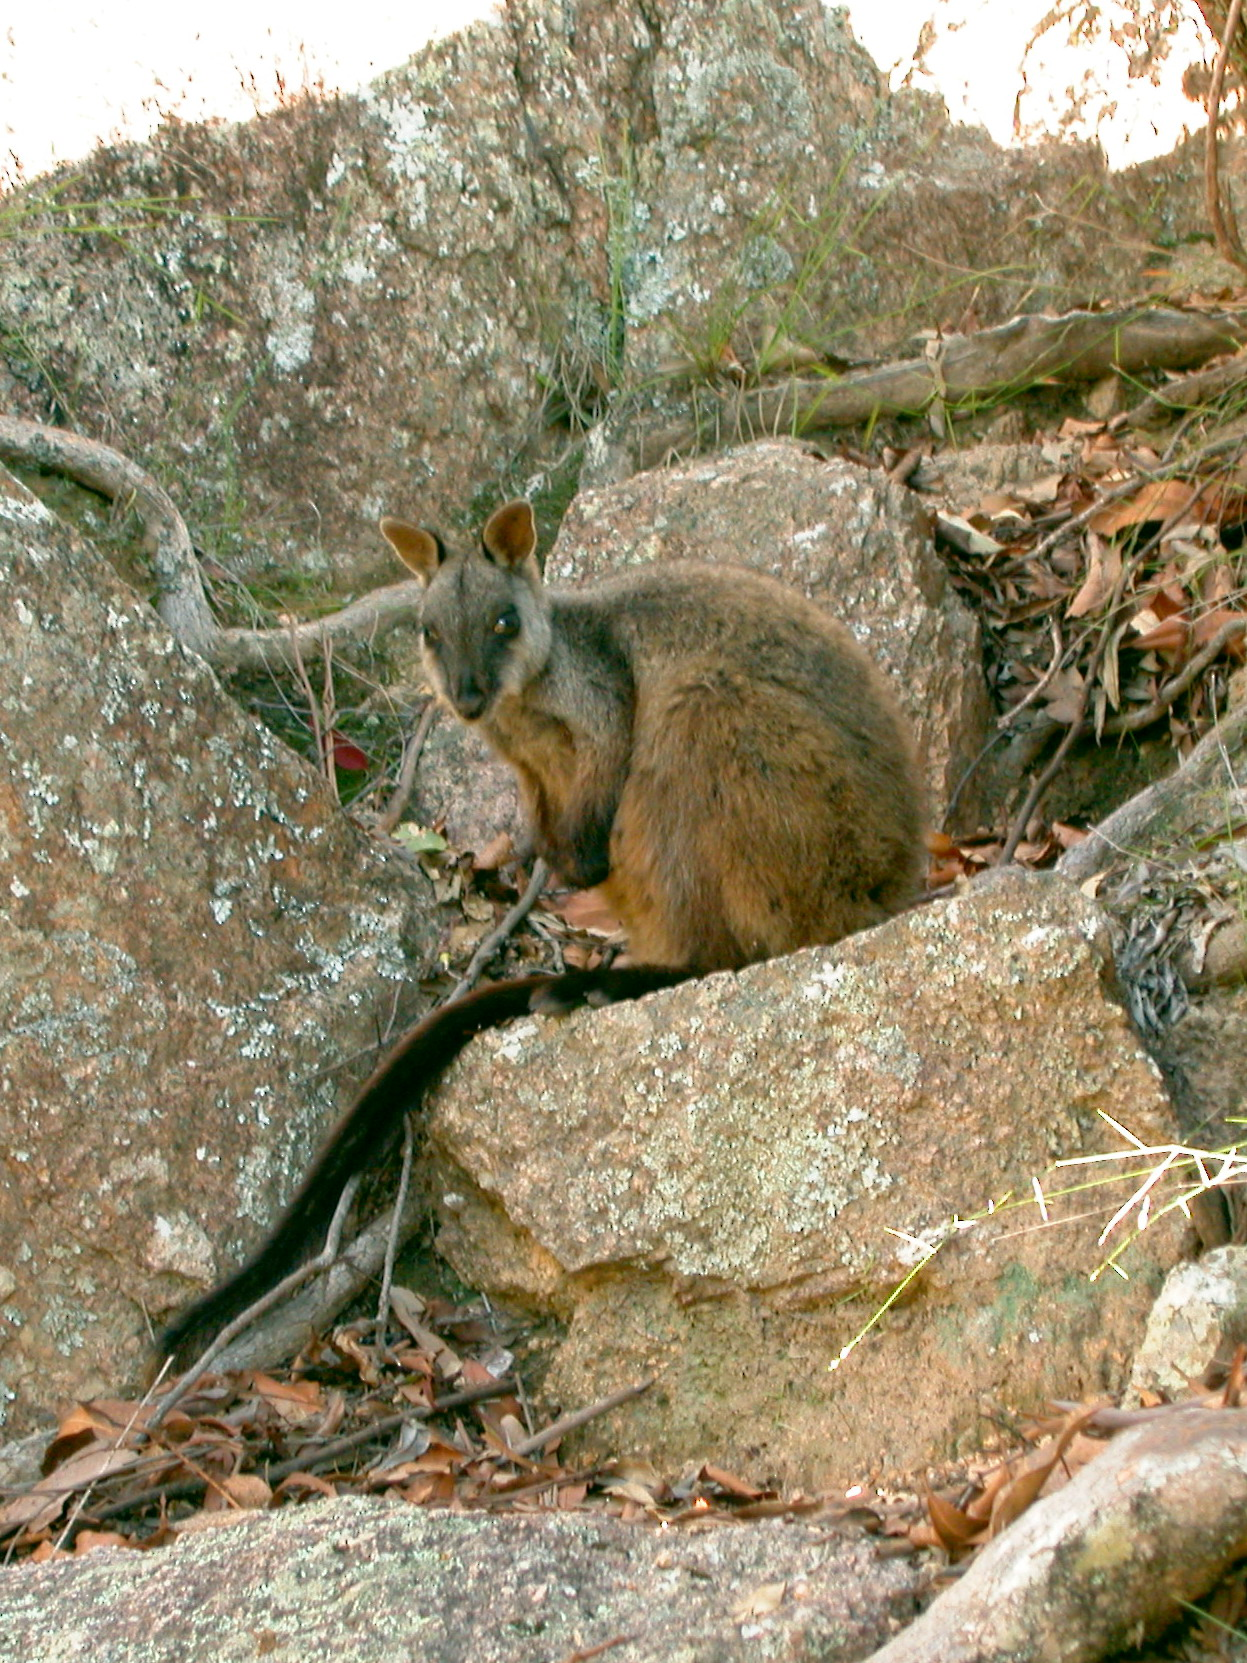 Brush Tailed Rock Wallaby Simple English Wikipedia The Free Encyclopedia